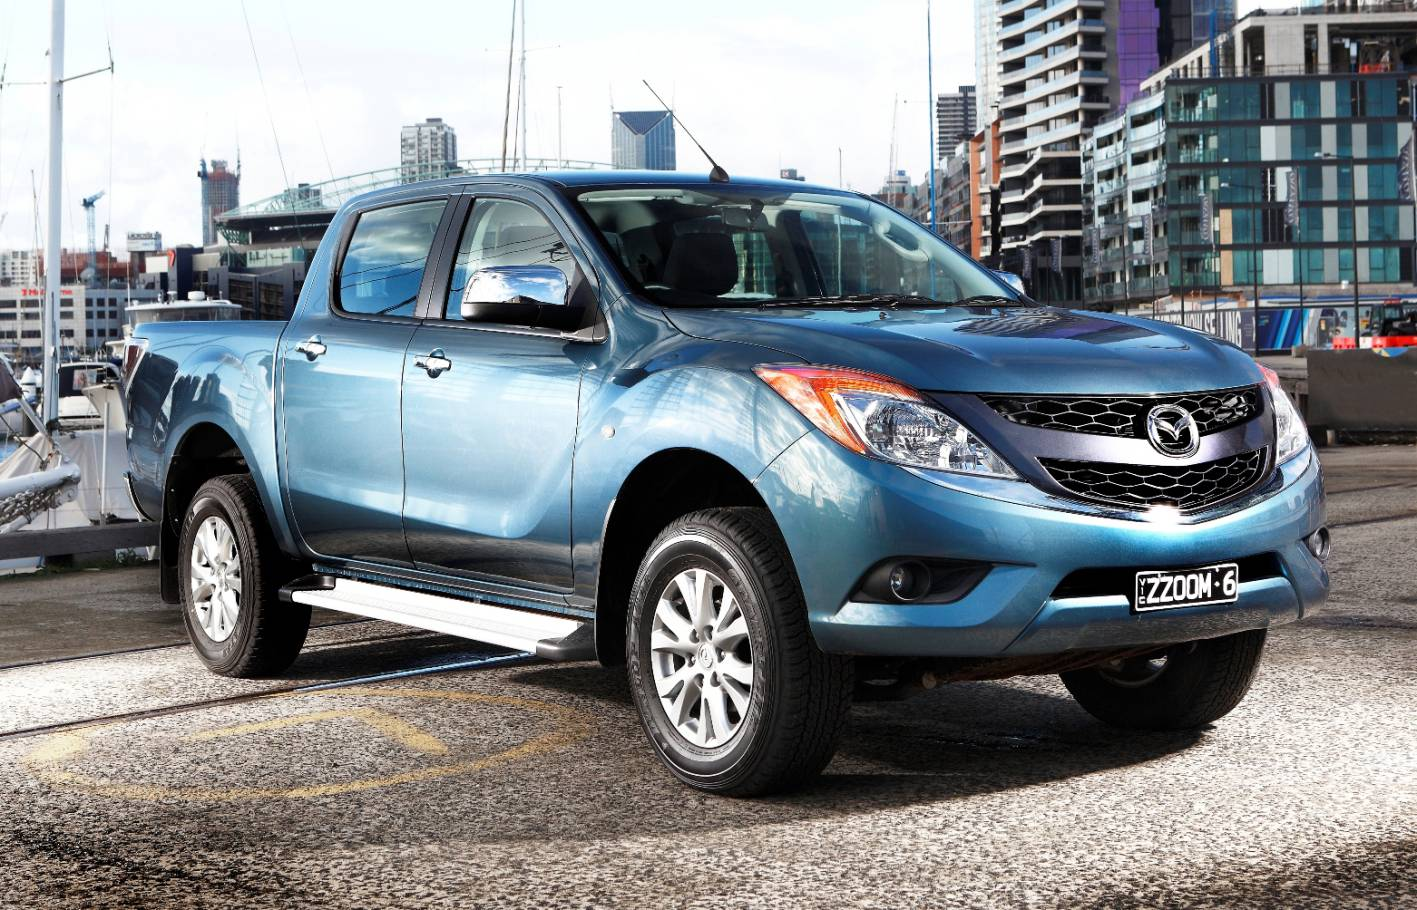 Strong five-cylinder diesel puts BT-50 and Ranger second in the 4WD ute segment